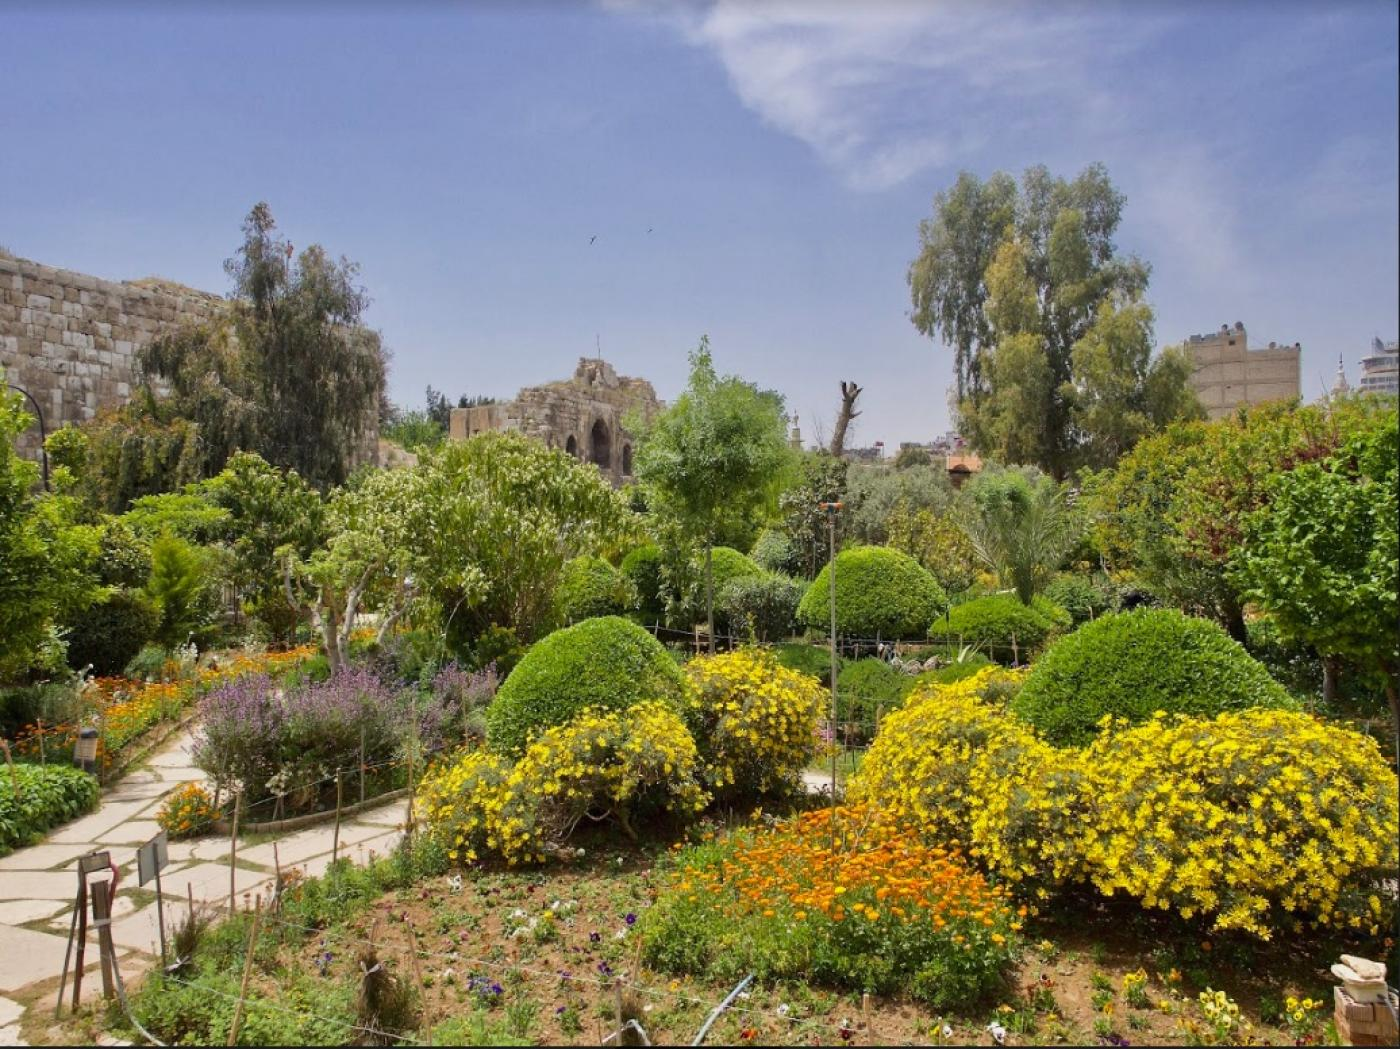 The gardens of Damascus: Can Syrians reconnect with nature